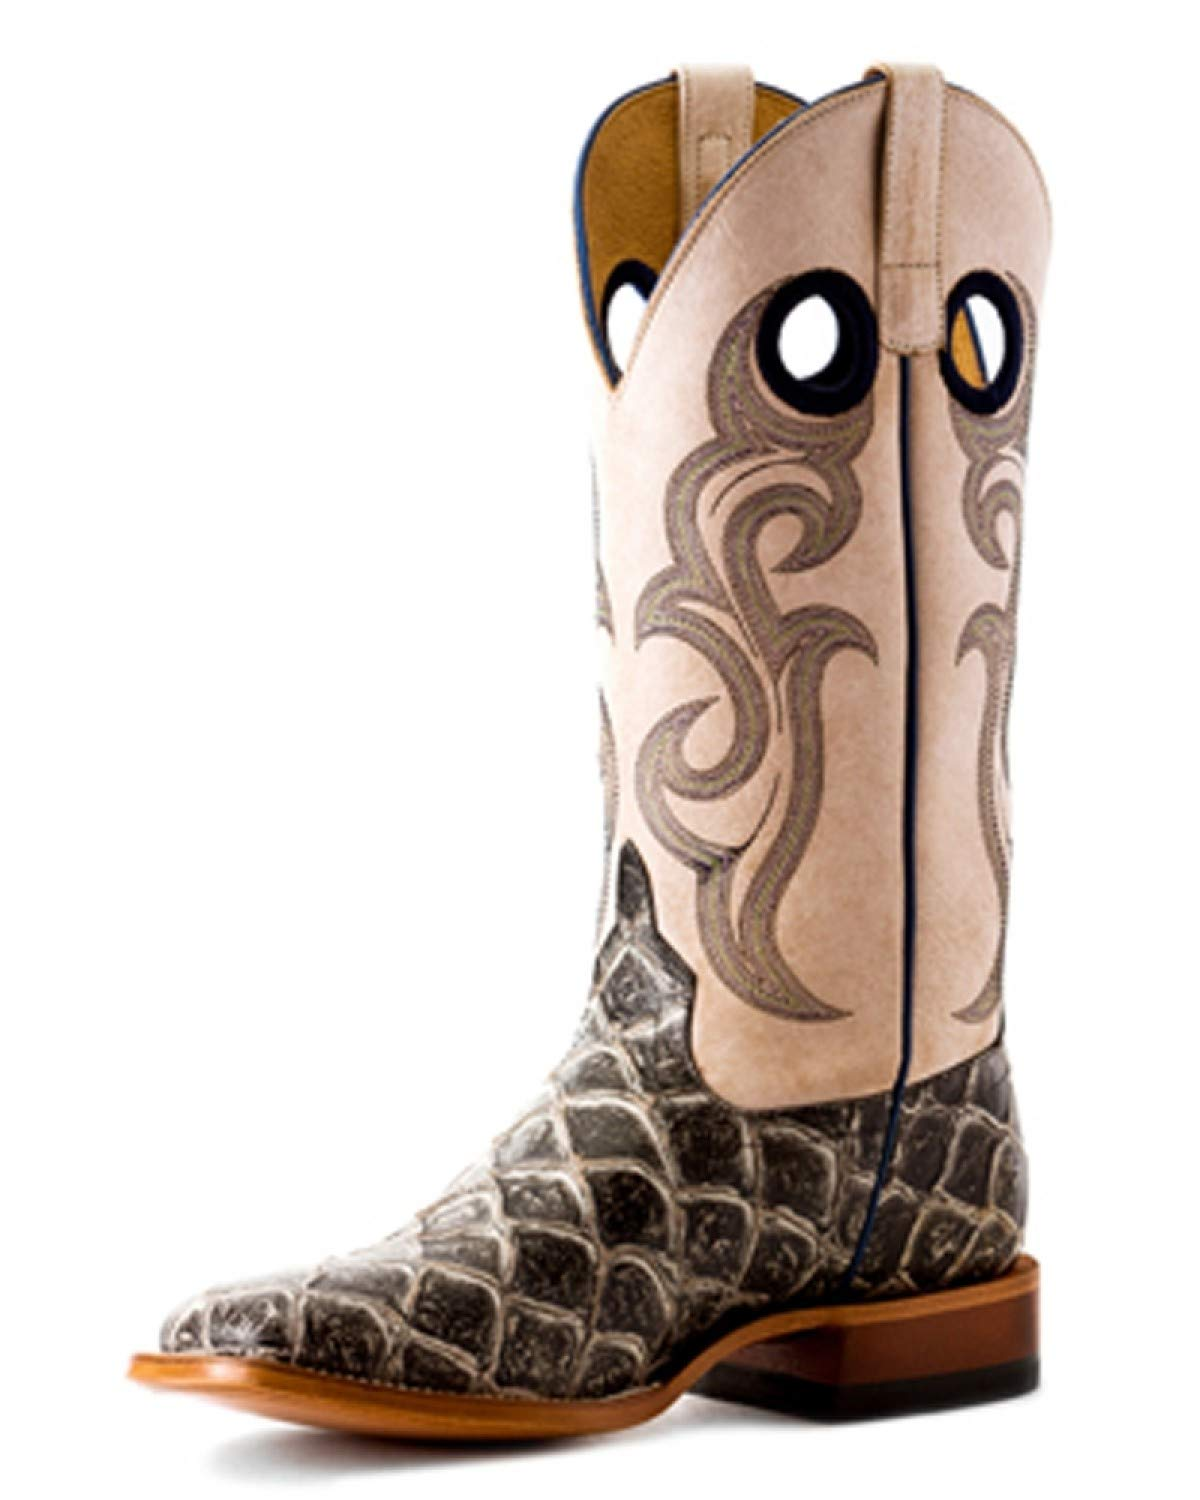 HORSE POWER by Anderson Bean HP1845 Asphalt Filet of Fish Bleached Bone Square Toe Boots (11.5)